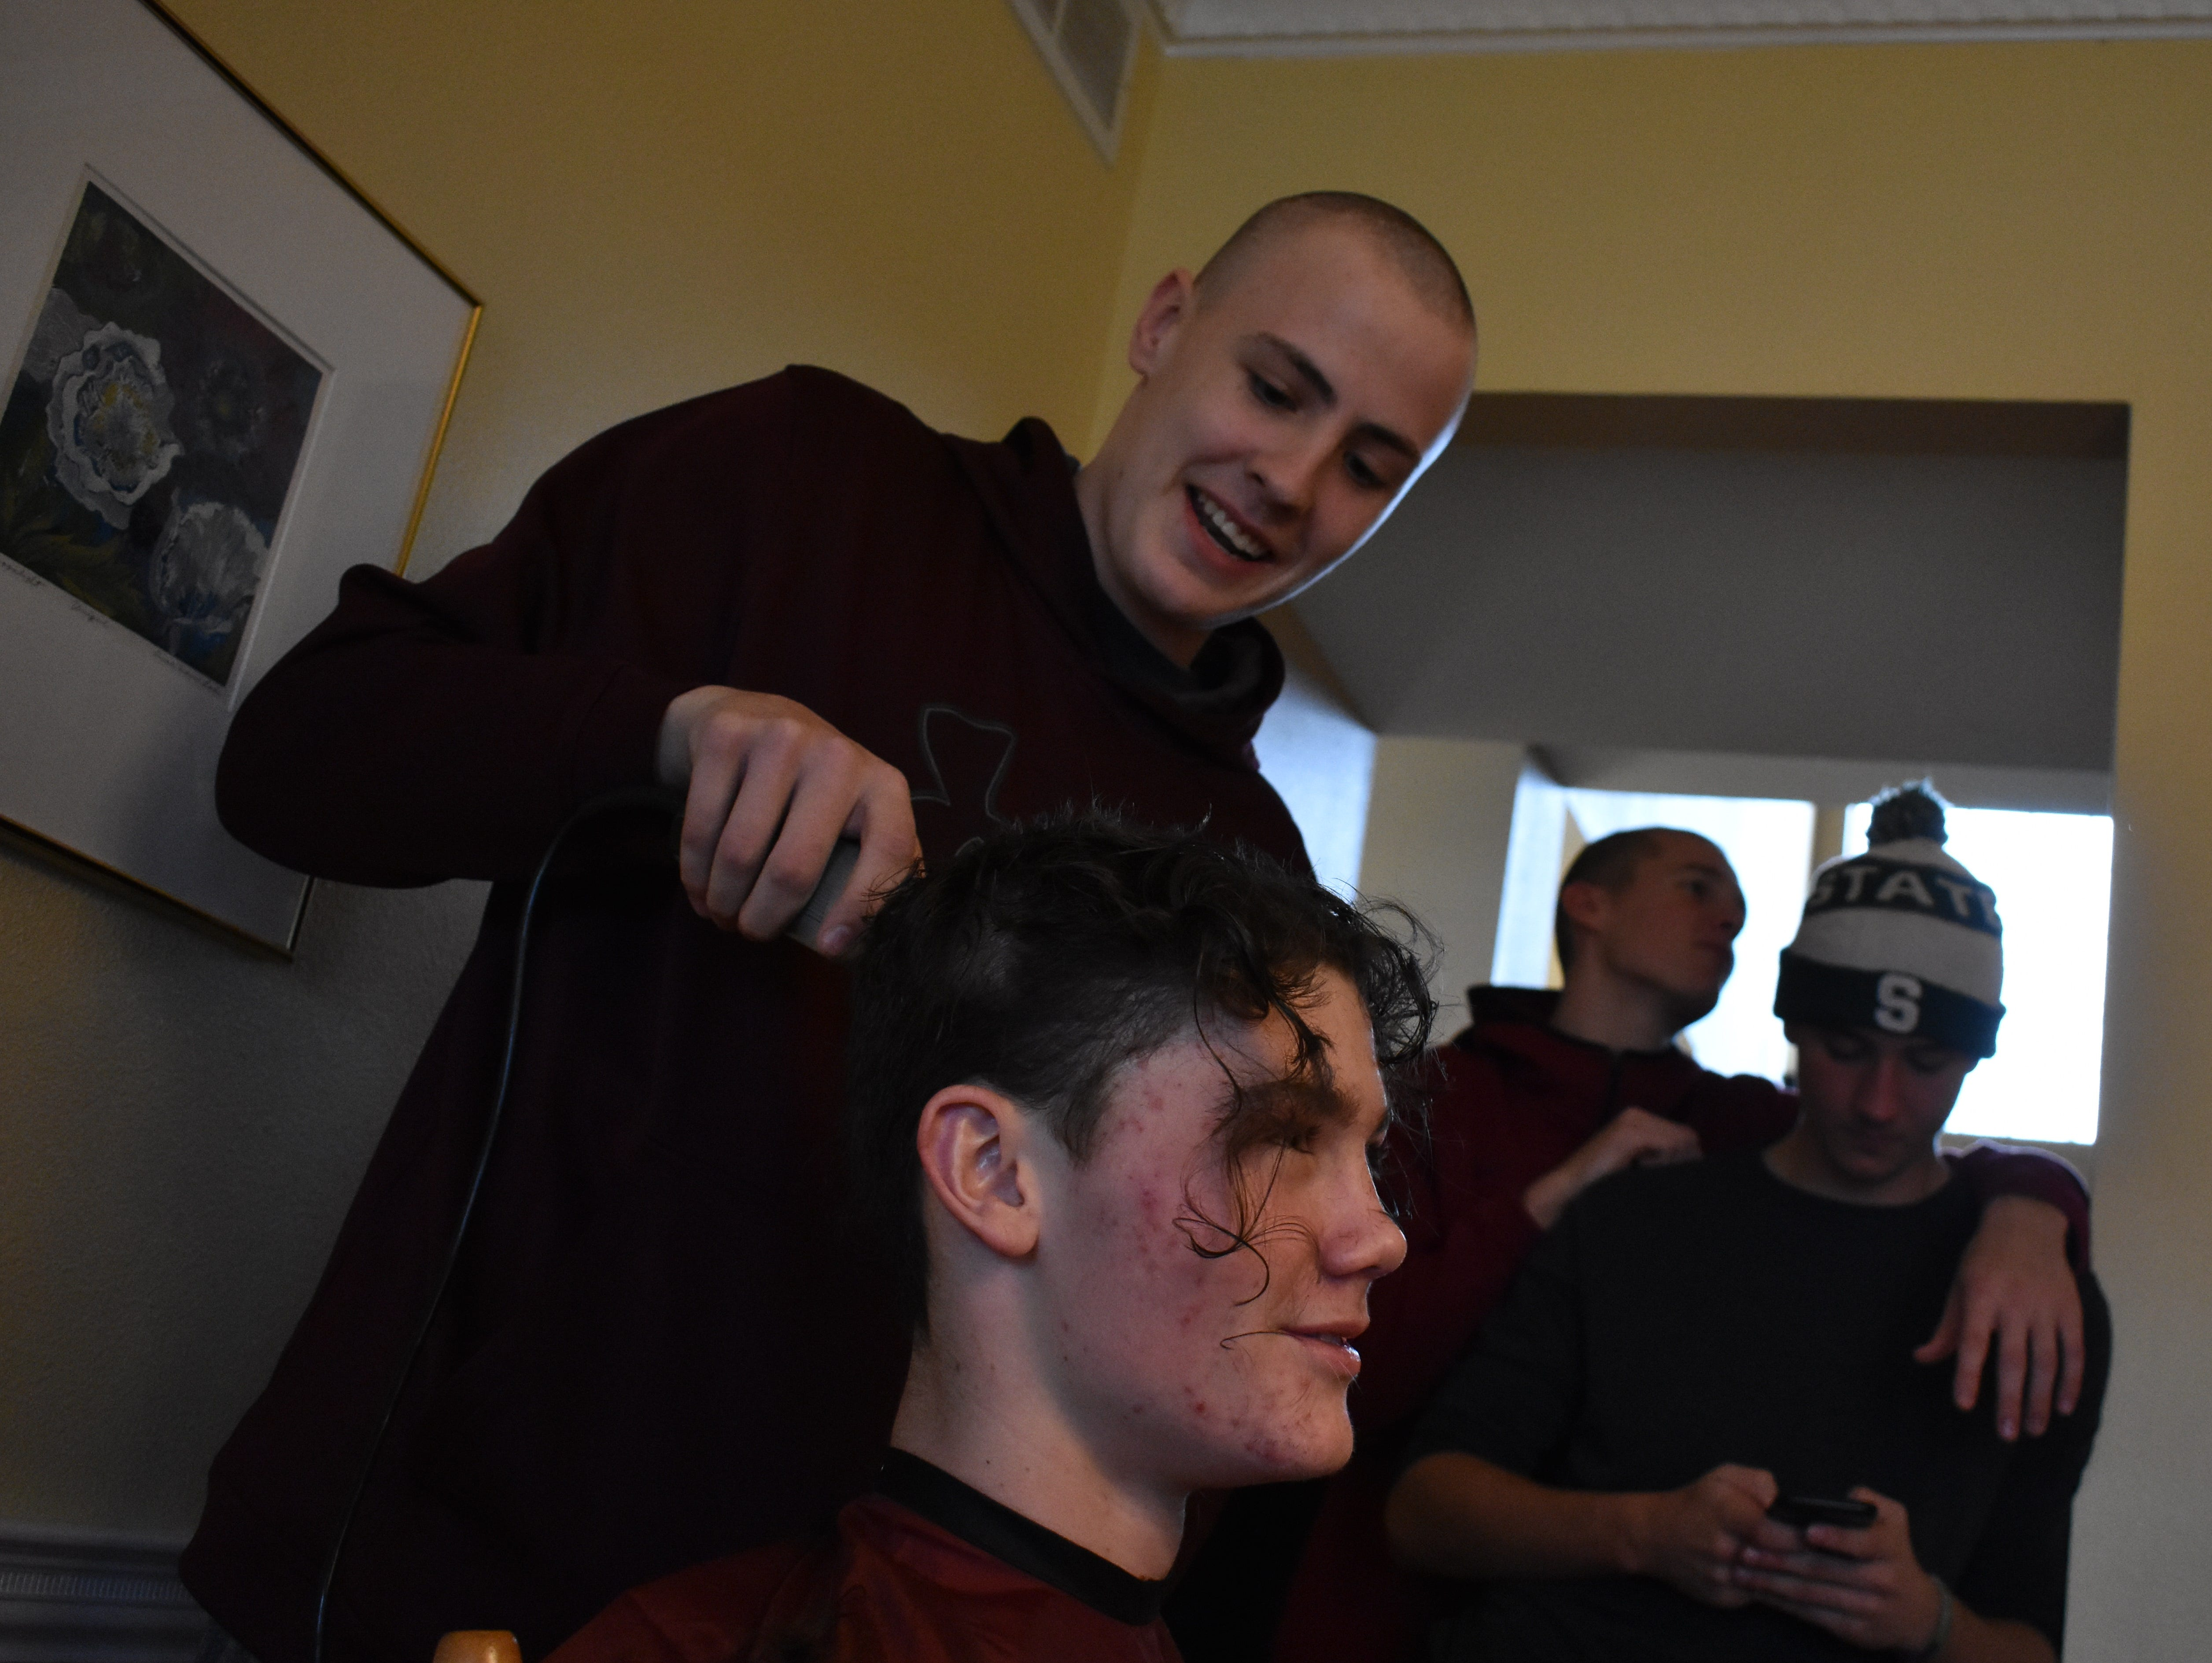 Rocky Mountain basketball player Carter Edgerley, who was recently diagnosed with cancer and shaved his head before losing his hair to chemotherapy treatments, shaves the head of teammate Dawson Otto on Dec. 31, 2018.